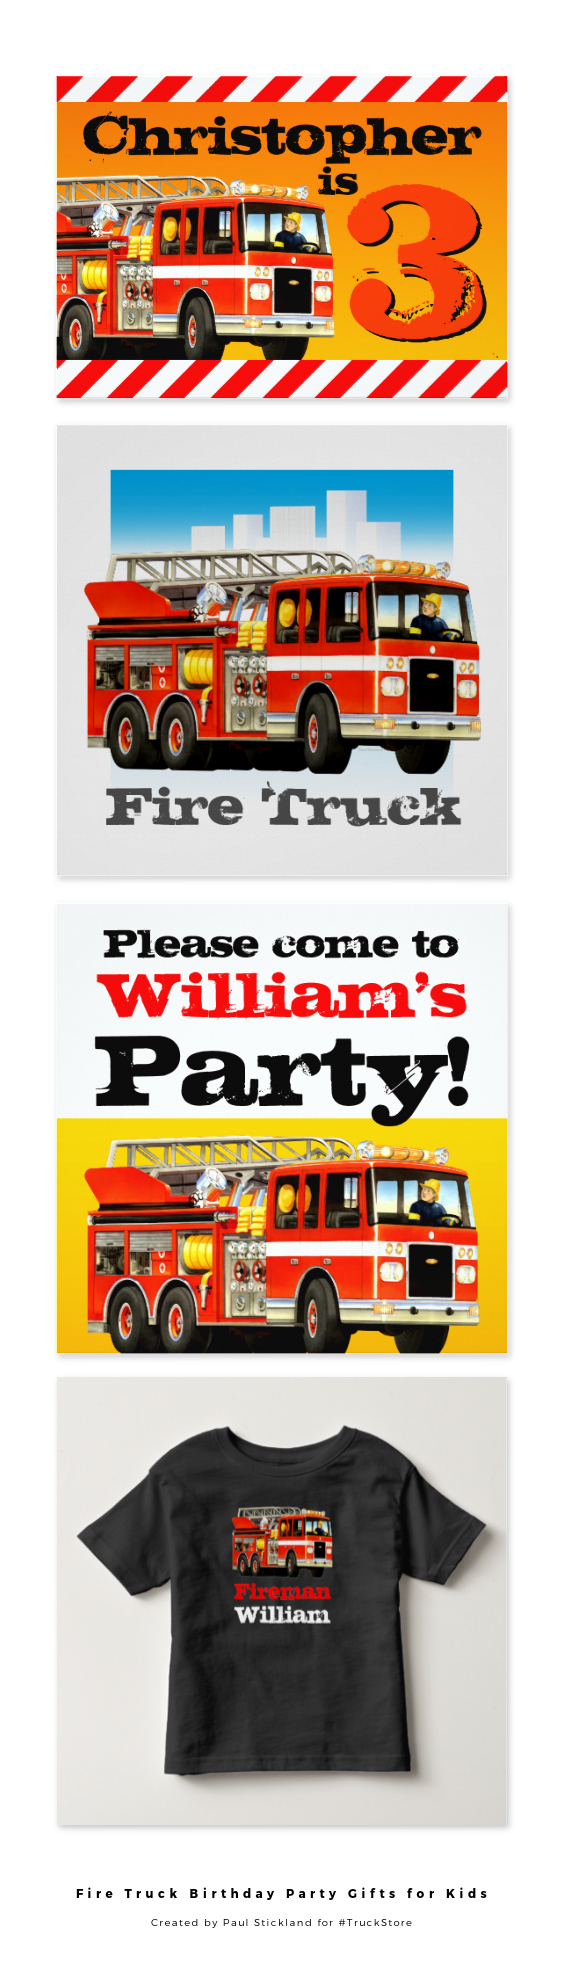 Kids love Fire Trucks and Firemen, so here is a Collection of the best Fire Truck Birthday Party Gifts and Fire Truck Party…